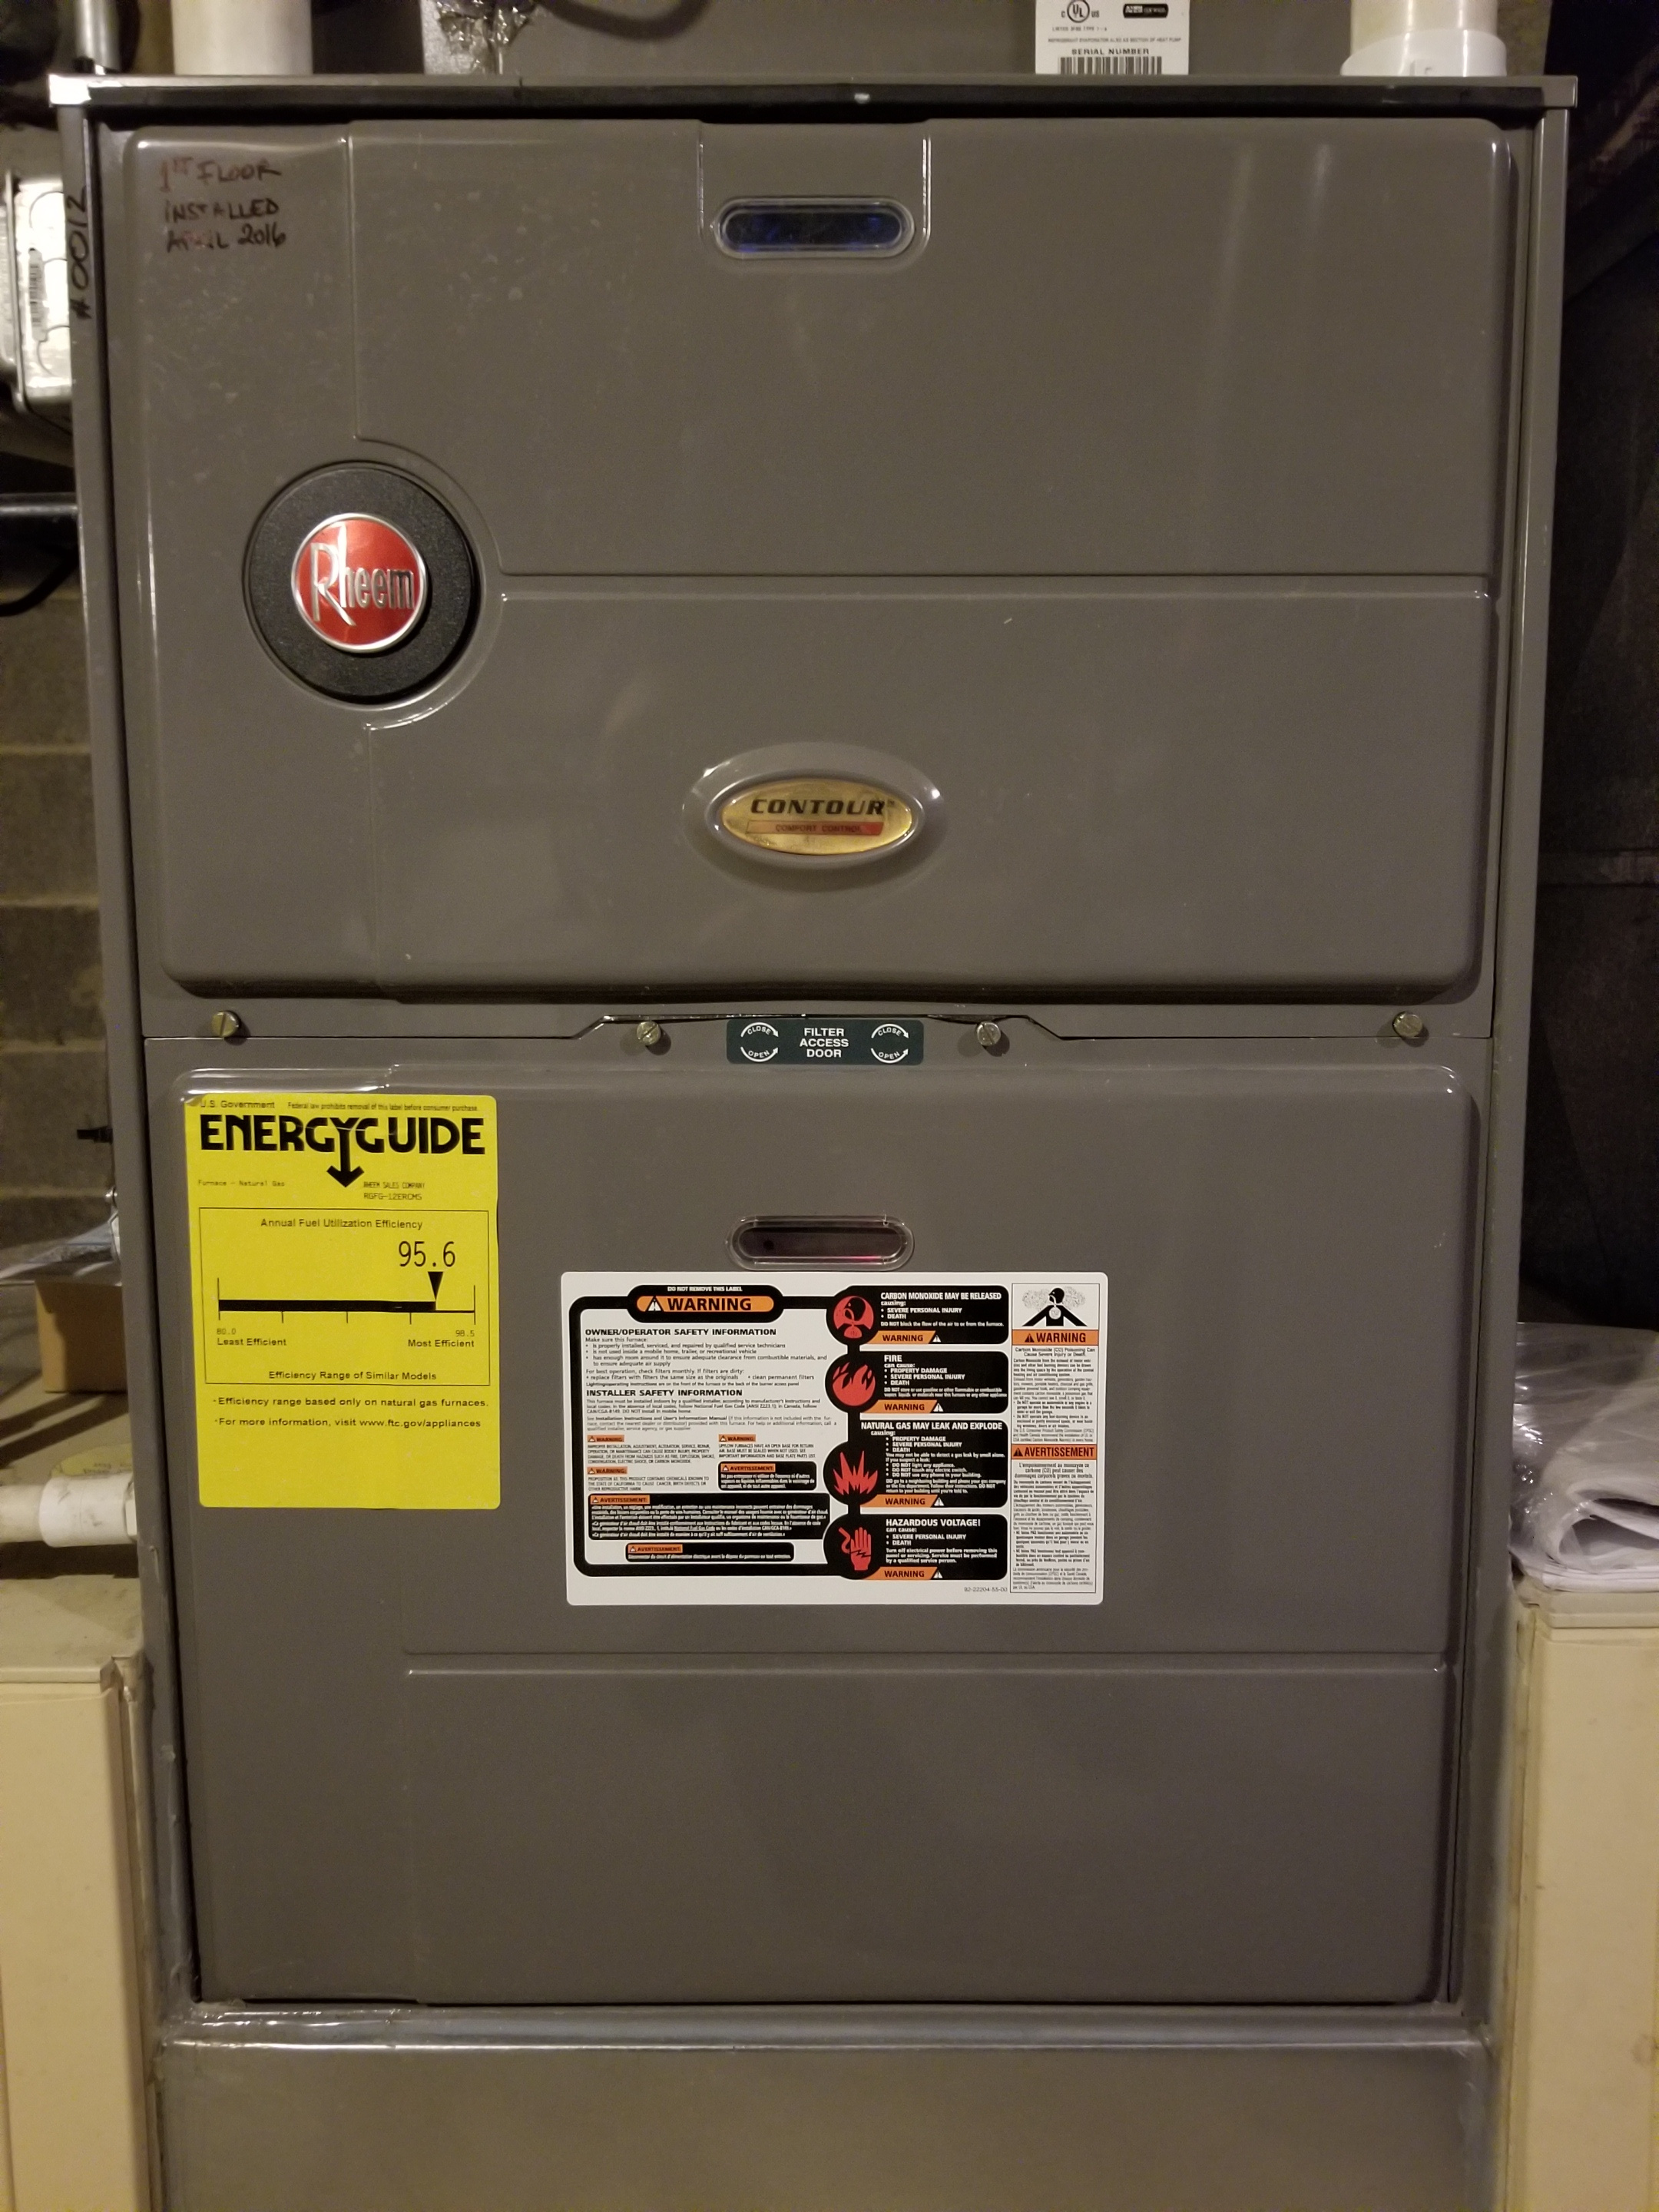 Repaired the furnace and made adjustments to improve the overall efficiency and life expectancy of the equipment